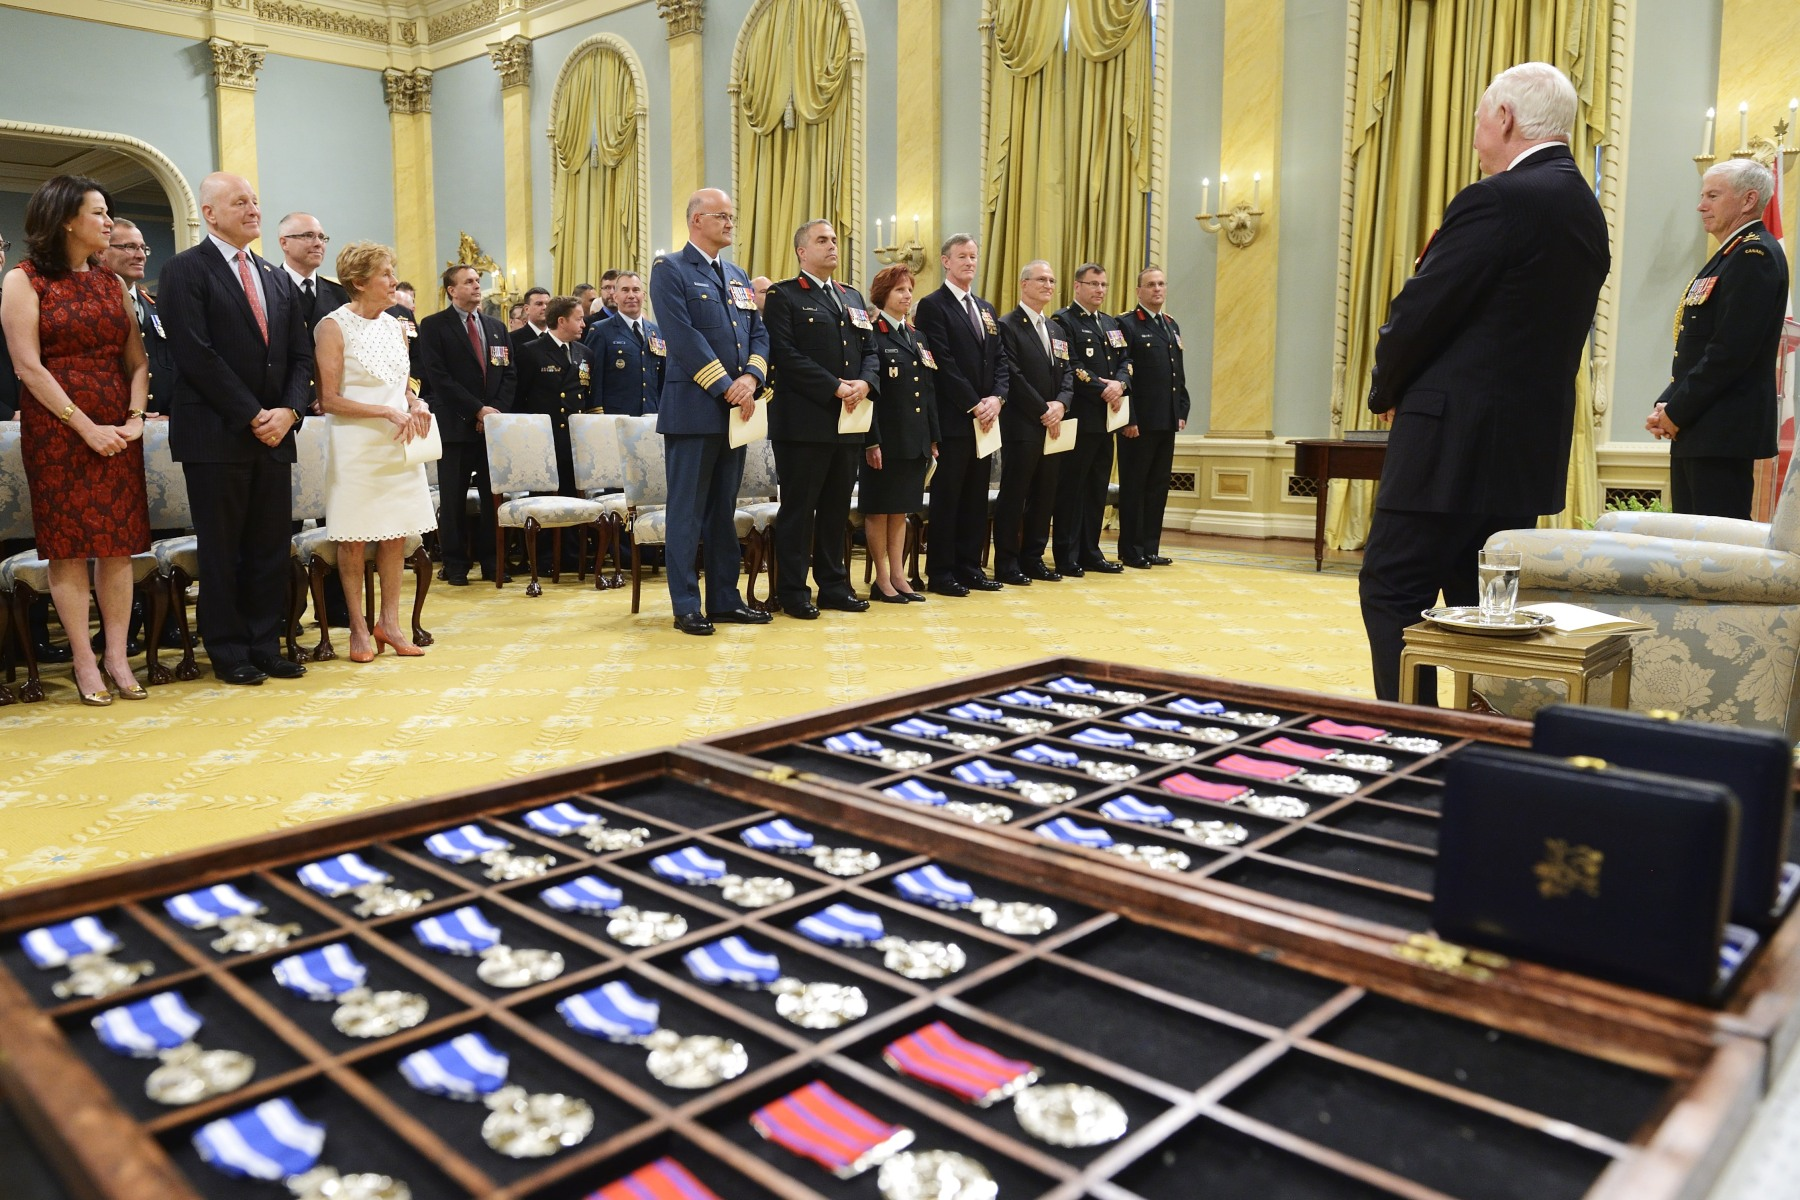 His Excellency the Right Honourable David Johnston, Governor General and Commander-in-Chief of Canada, presented Meritorious Service Decorations (Military Division) and Bravery Decorations to members of the Canadian Armed Forces (CAF) and allied forces, during a ceremony at Rideau Hall.